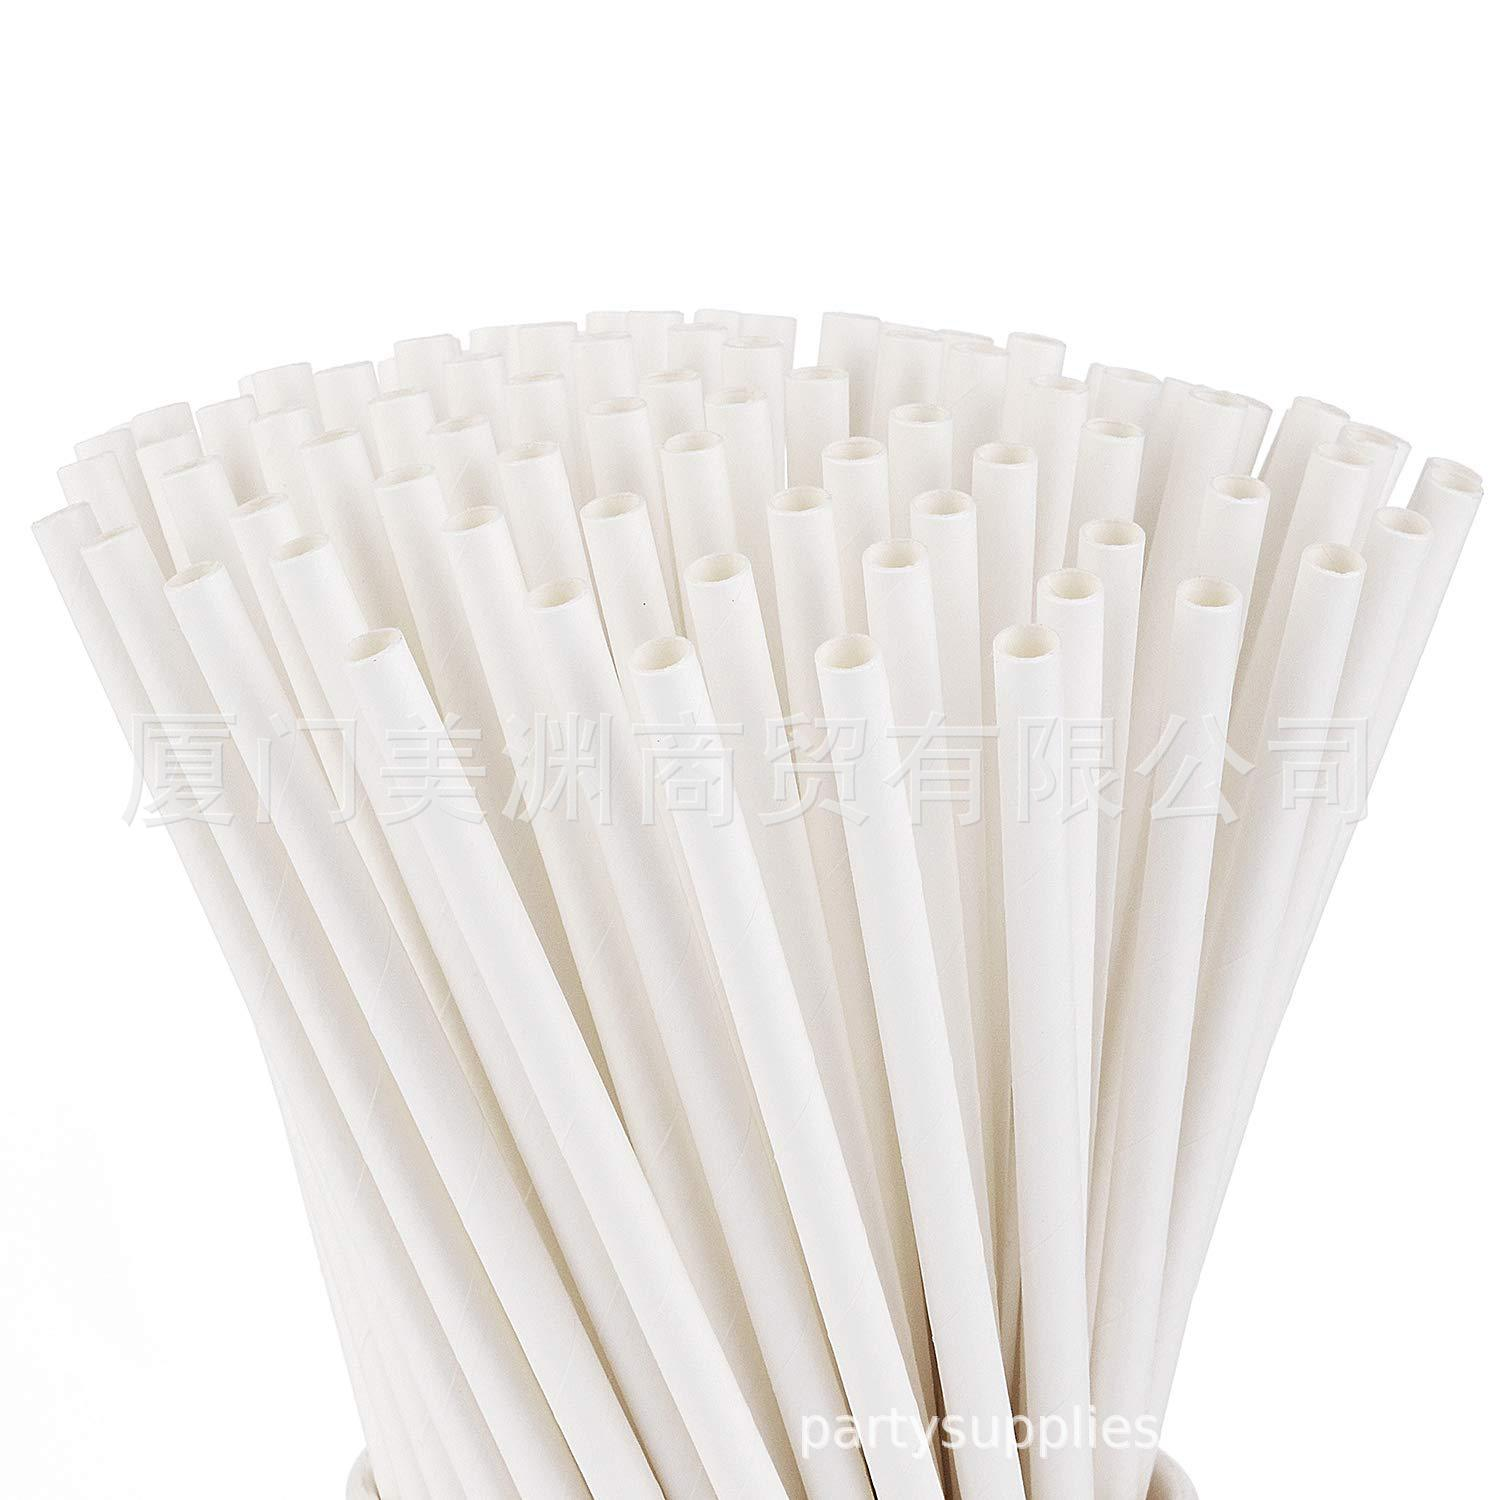 Europe And America Paper Originality Straw Disposable Paper Straw Manufacturers Environmentally Friendly Biodegradable Pure Whit